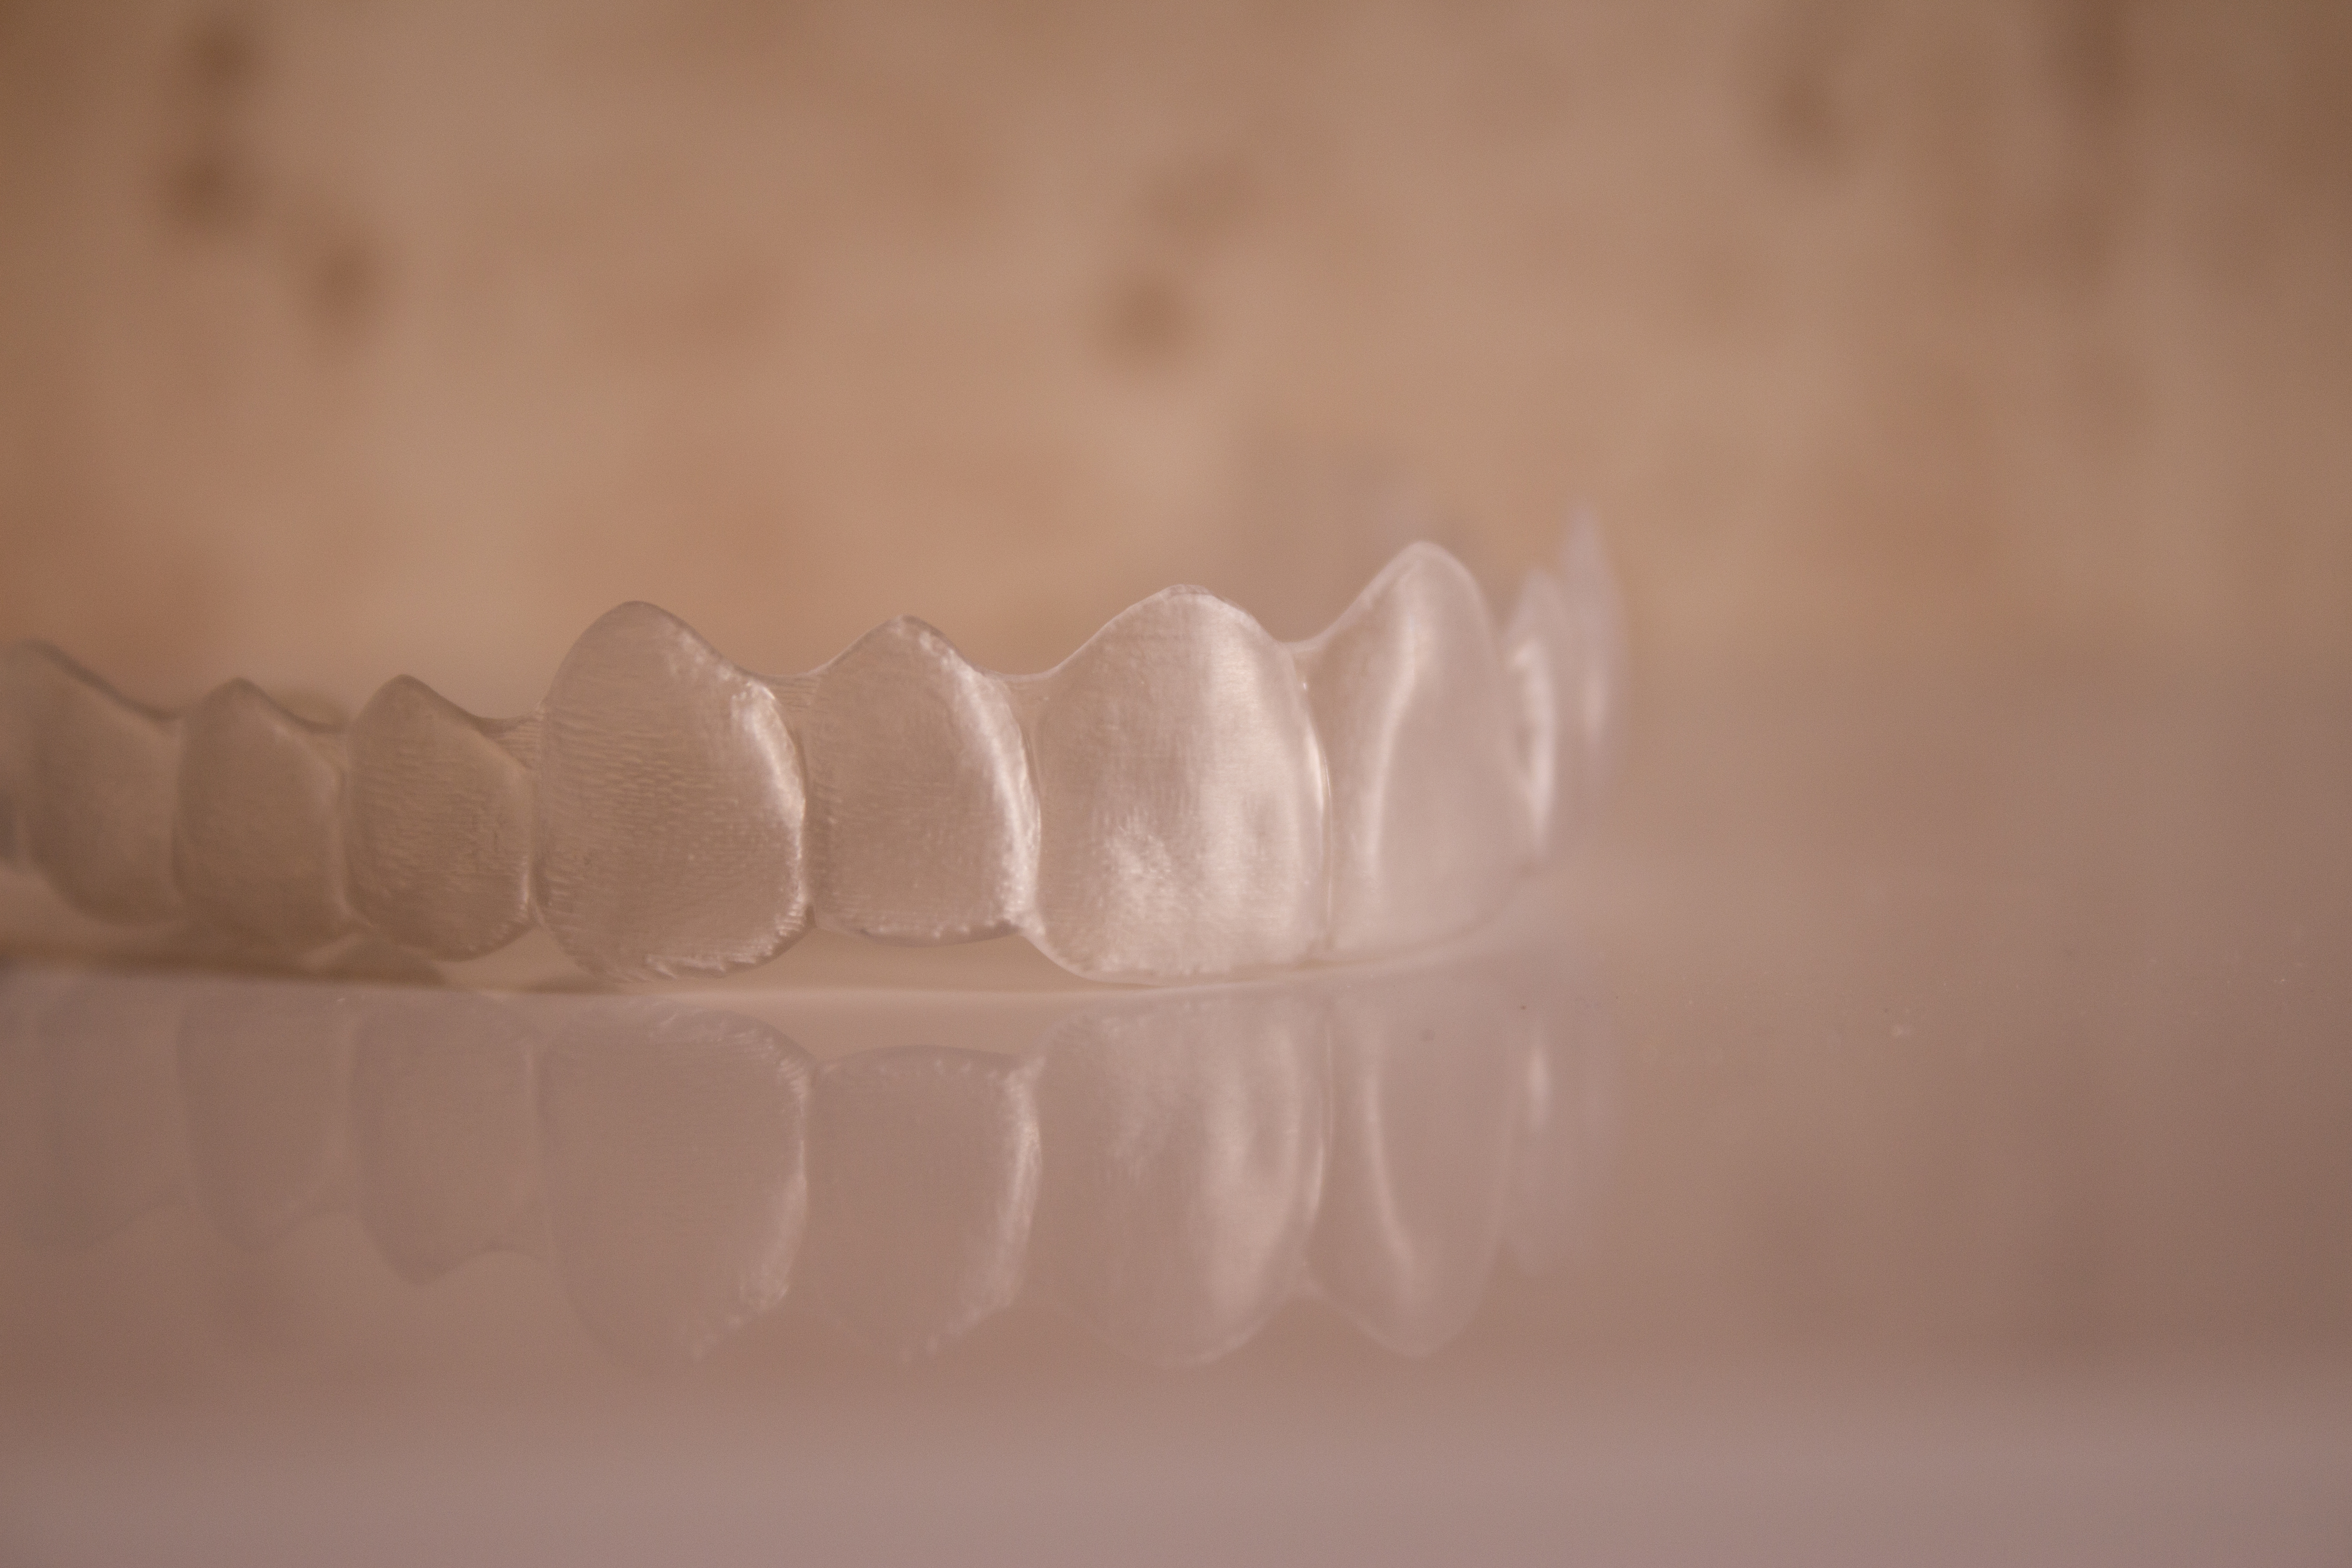 Invisible orthodontics reflected on the surface